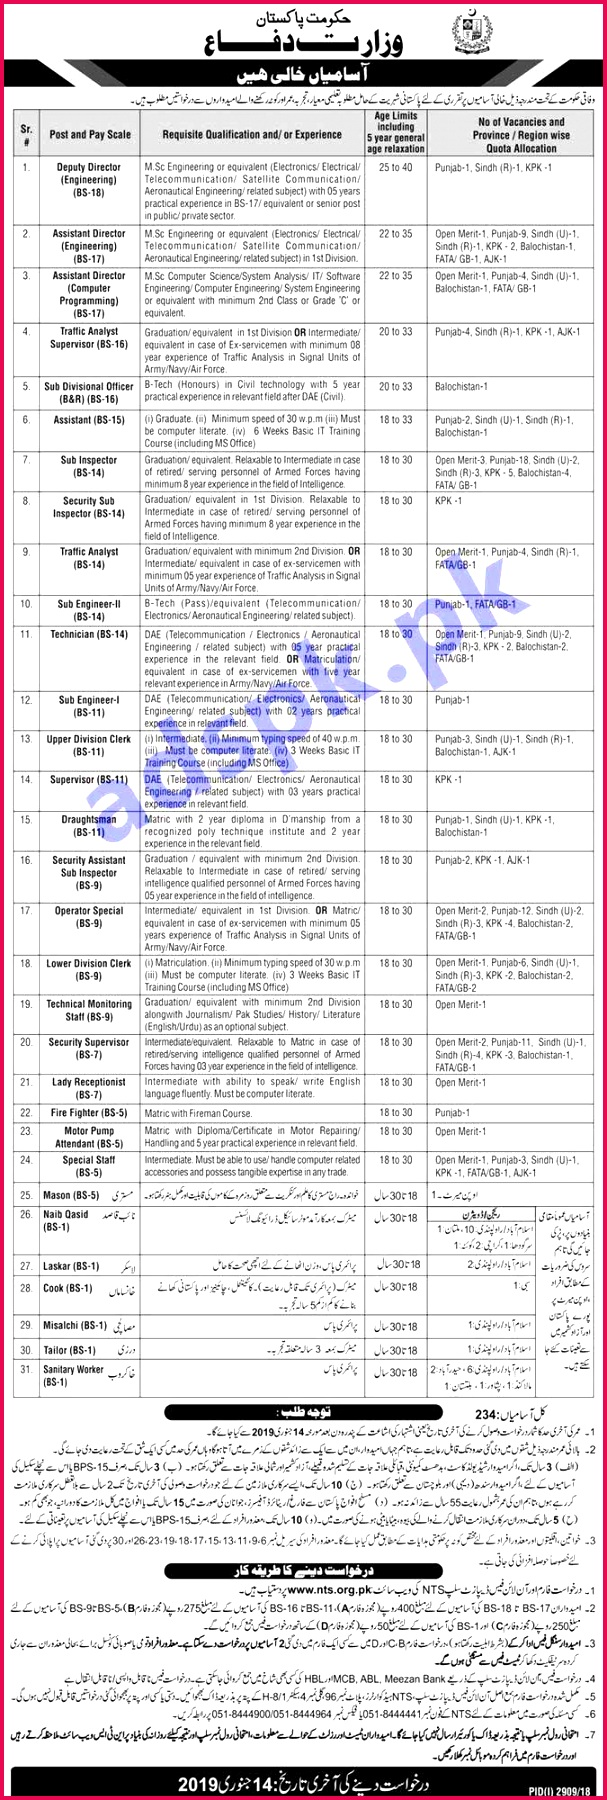 Ministry of Defence MOD 234 Jobs 2019 NTS Written Test MCQs Syllabus Paper Deputy Director Assistant